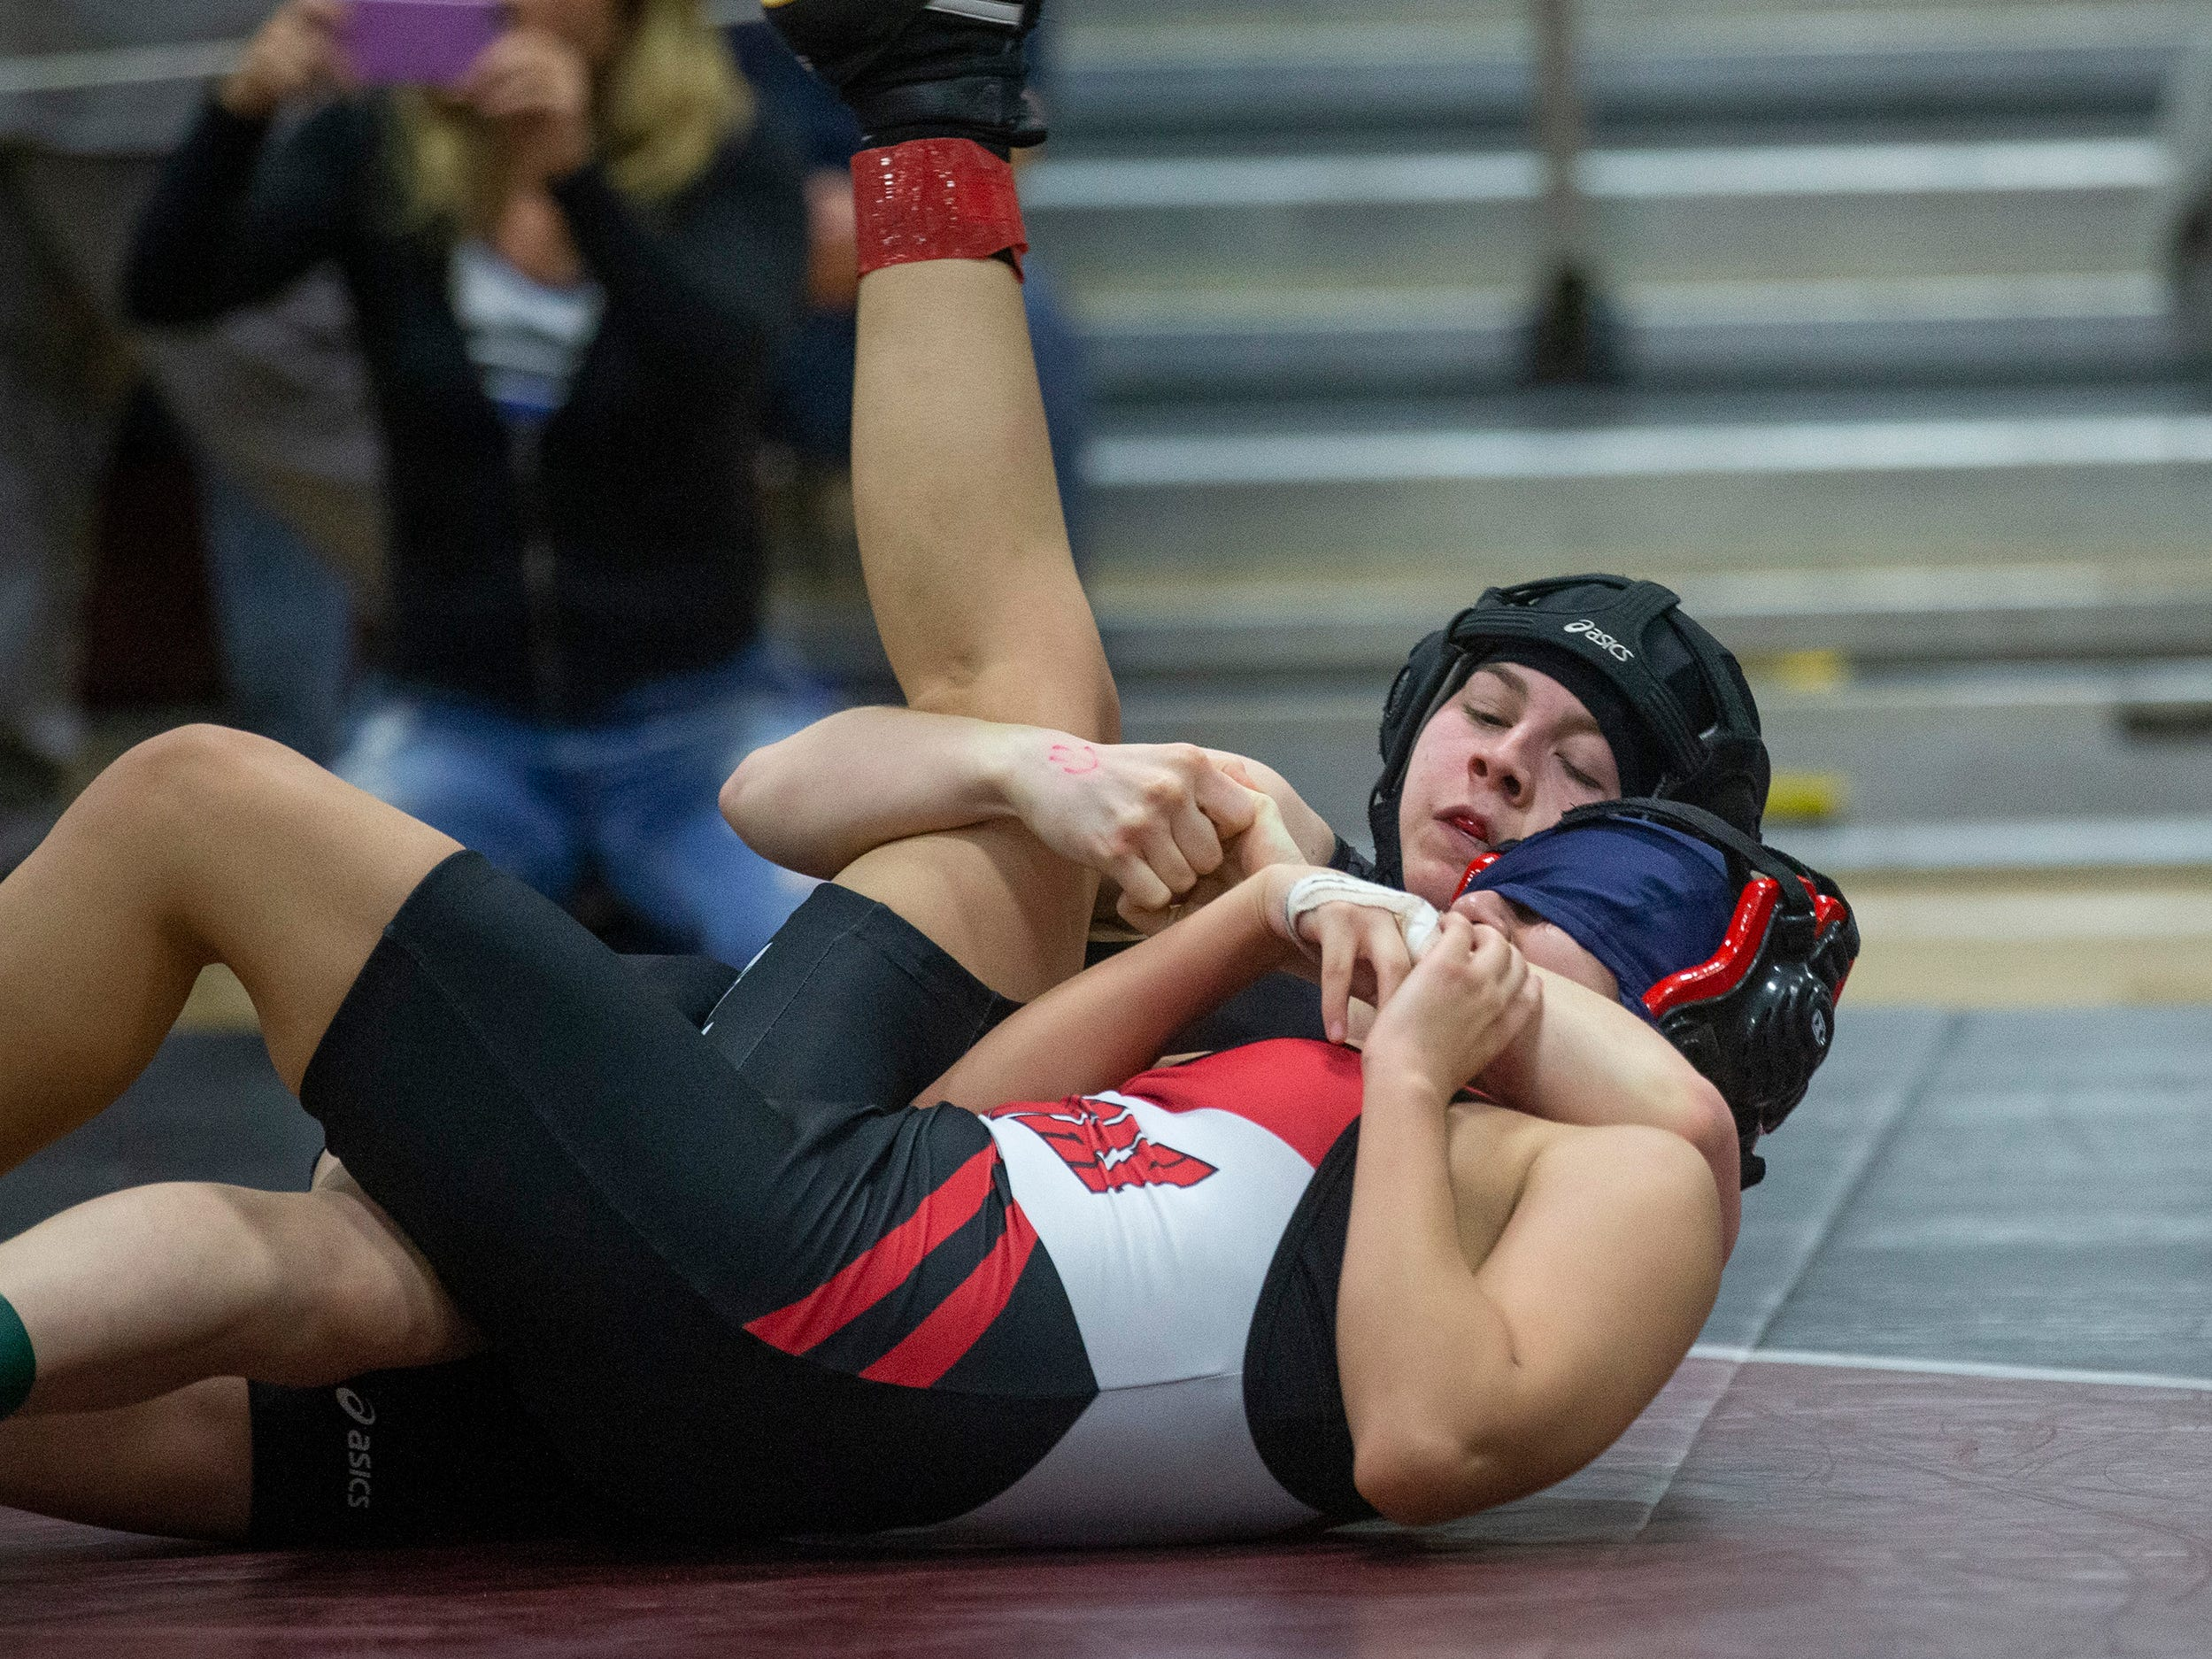 Highpoint's Randi Miley pins Rahway's Isabel Saire in the 105 lbs North Region final. NJSIAA Girls Region Wrestling at Red Bank Regional High School in Red Bank NJ on February 17, 2019.